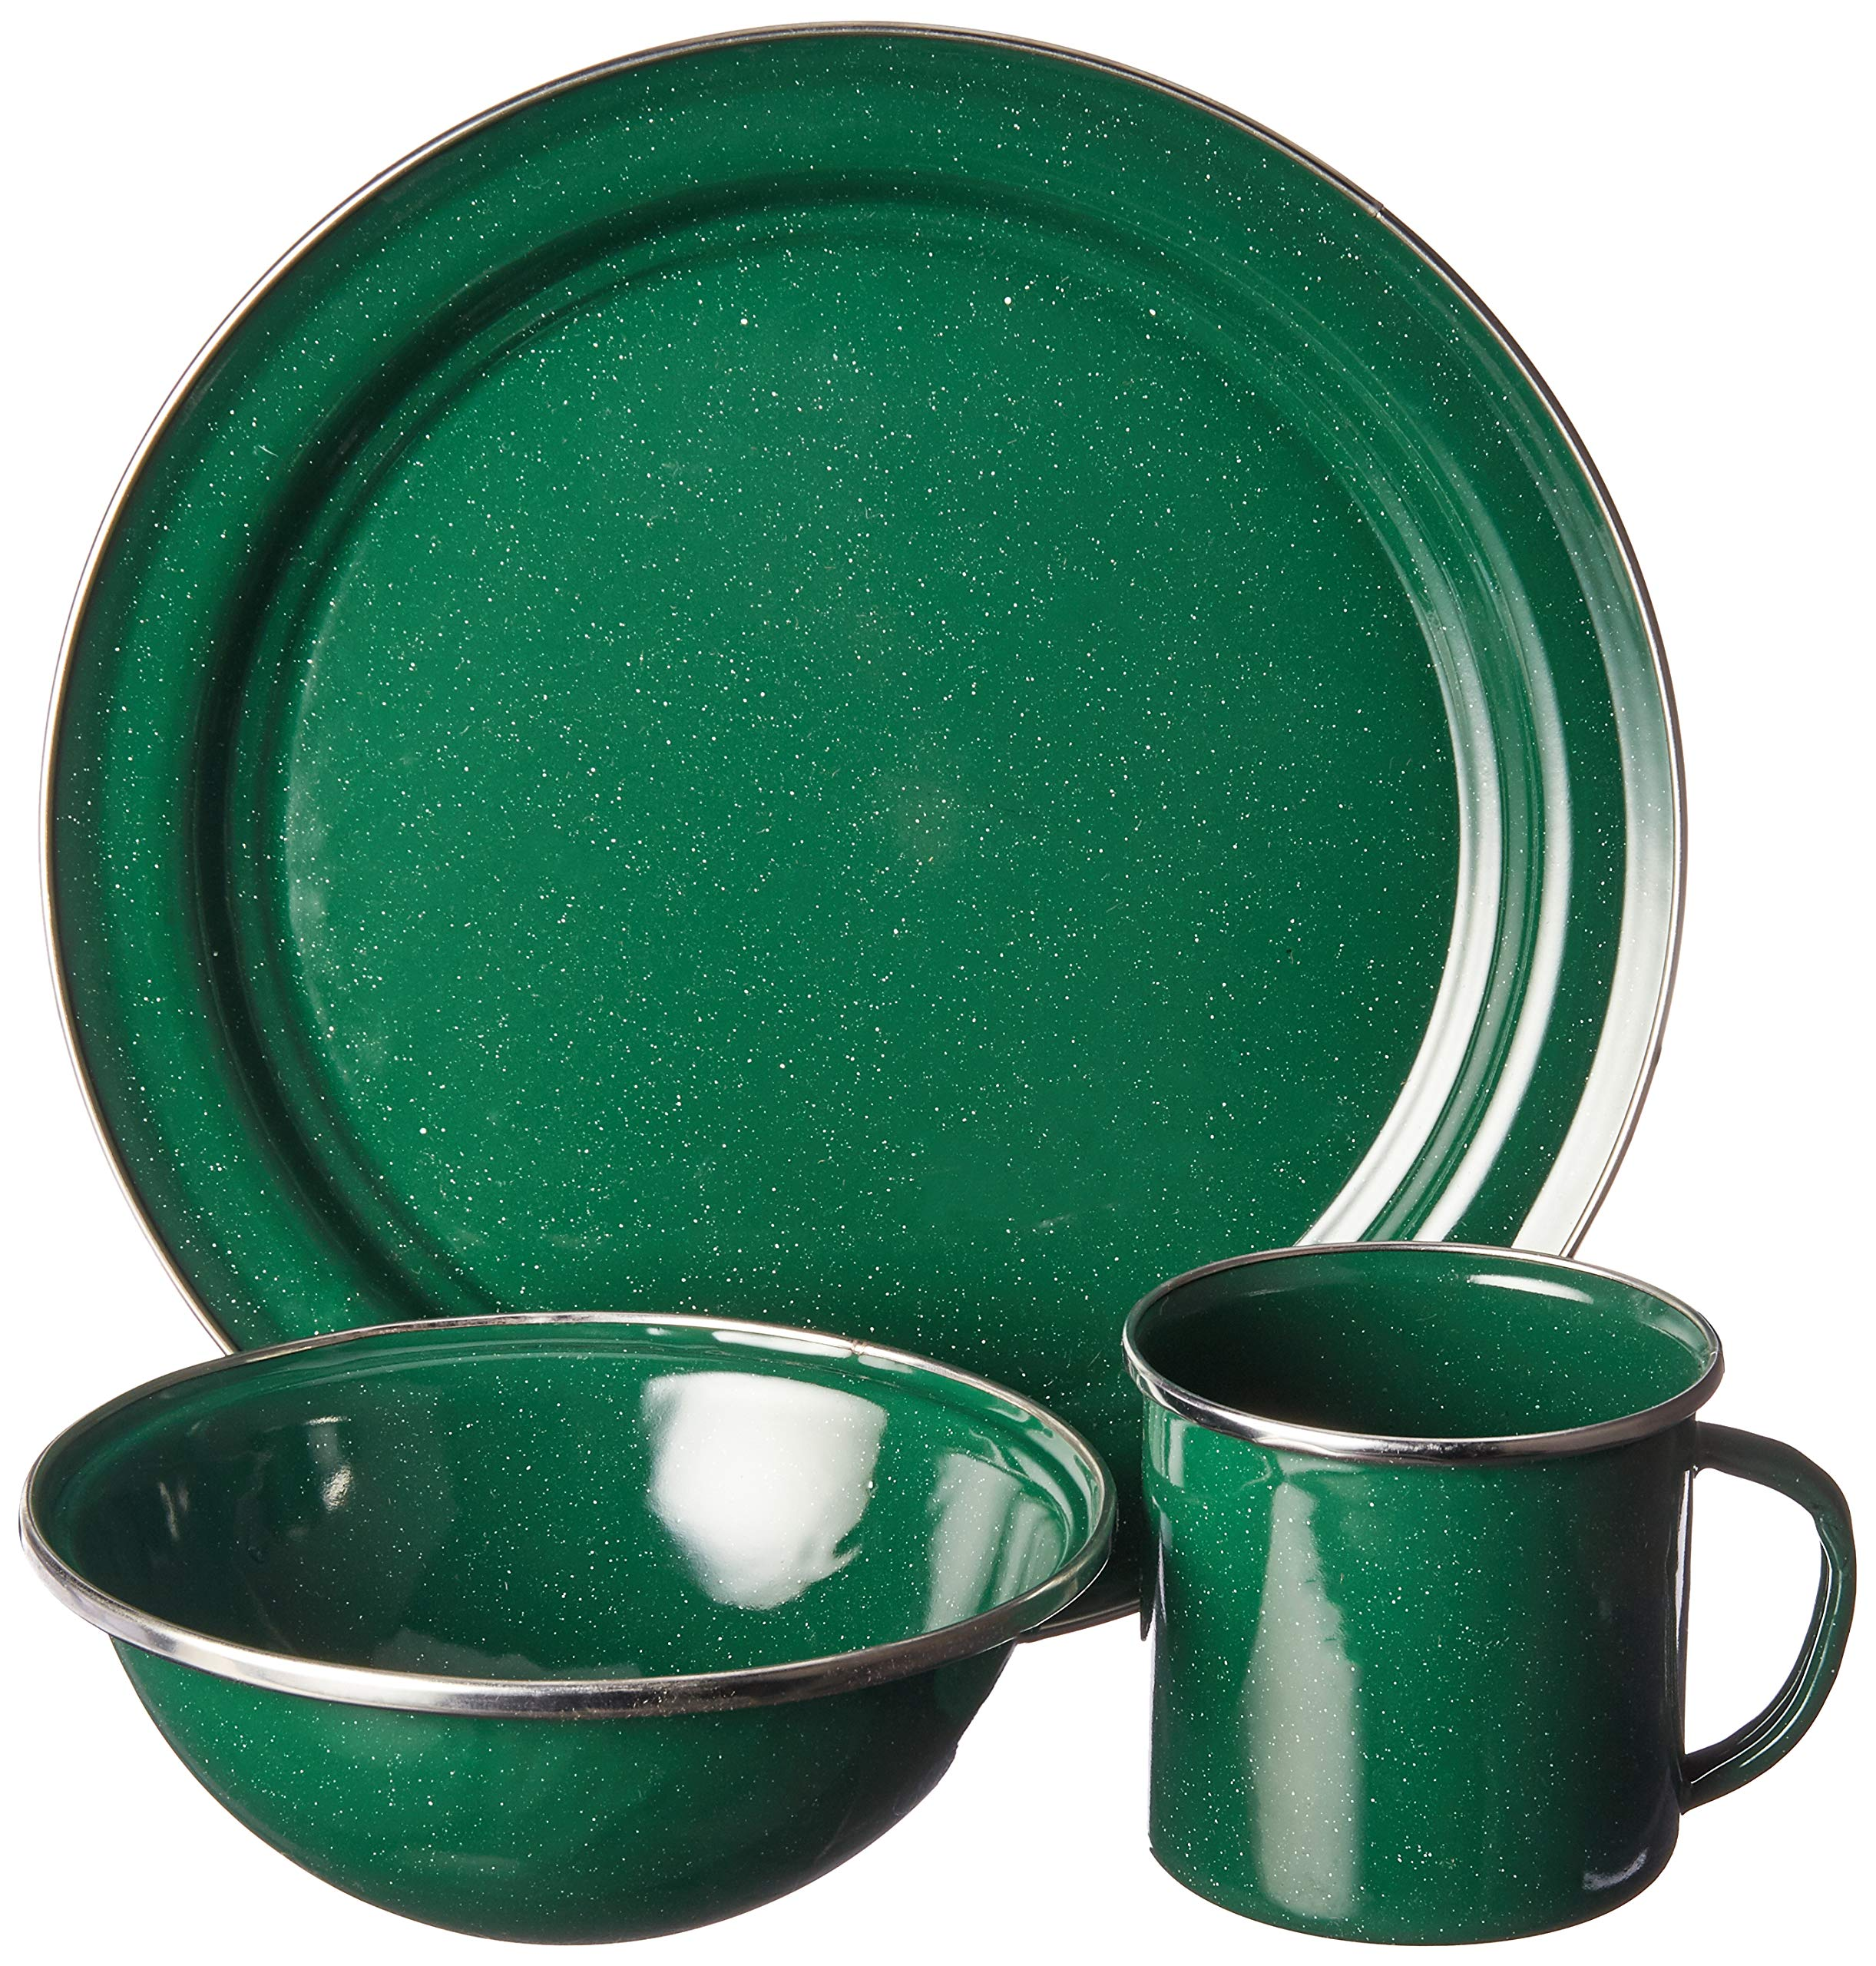 GSI Outdoors 4 Person 25212 Pioneer Table Set Green Enamel - Four person enamelware camp set blends classic style with beautiful blue porcelained finish and brilliant stainless steel rim Heavy glaze; twice kiln-hardened to 1000° F (537.8° C) for superior durability. Enduring steel construction is dishwasher safe and perfectly suited to both indoor and outdoor use. - kitchen-tabletop, kitchen-dining-room, dinnerware-sets - 91iZLQ1IcxL -